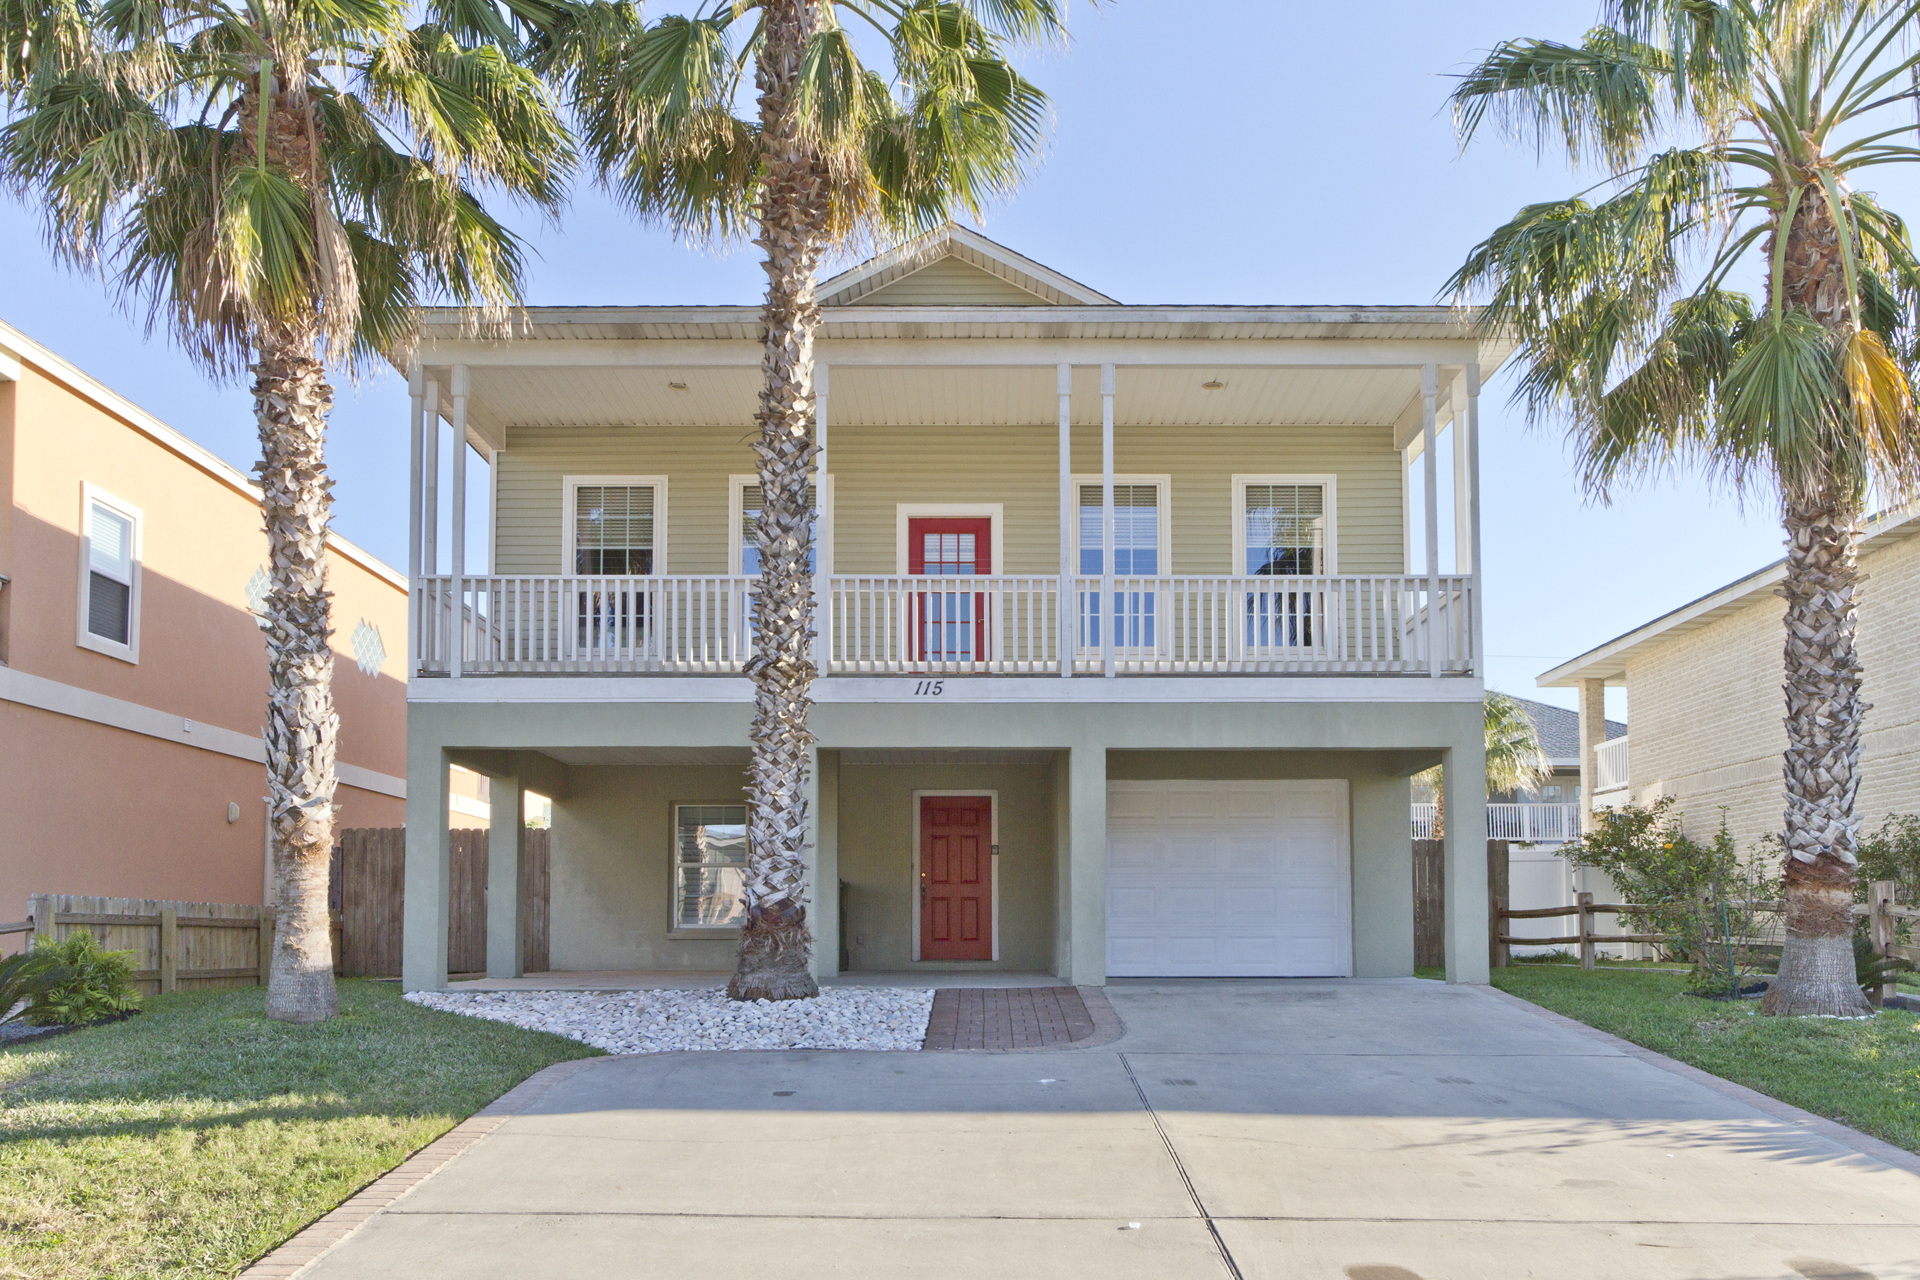 SPI vacation home 1/2 block to the beach with pool and 4 bedrooms sleeps 12